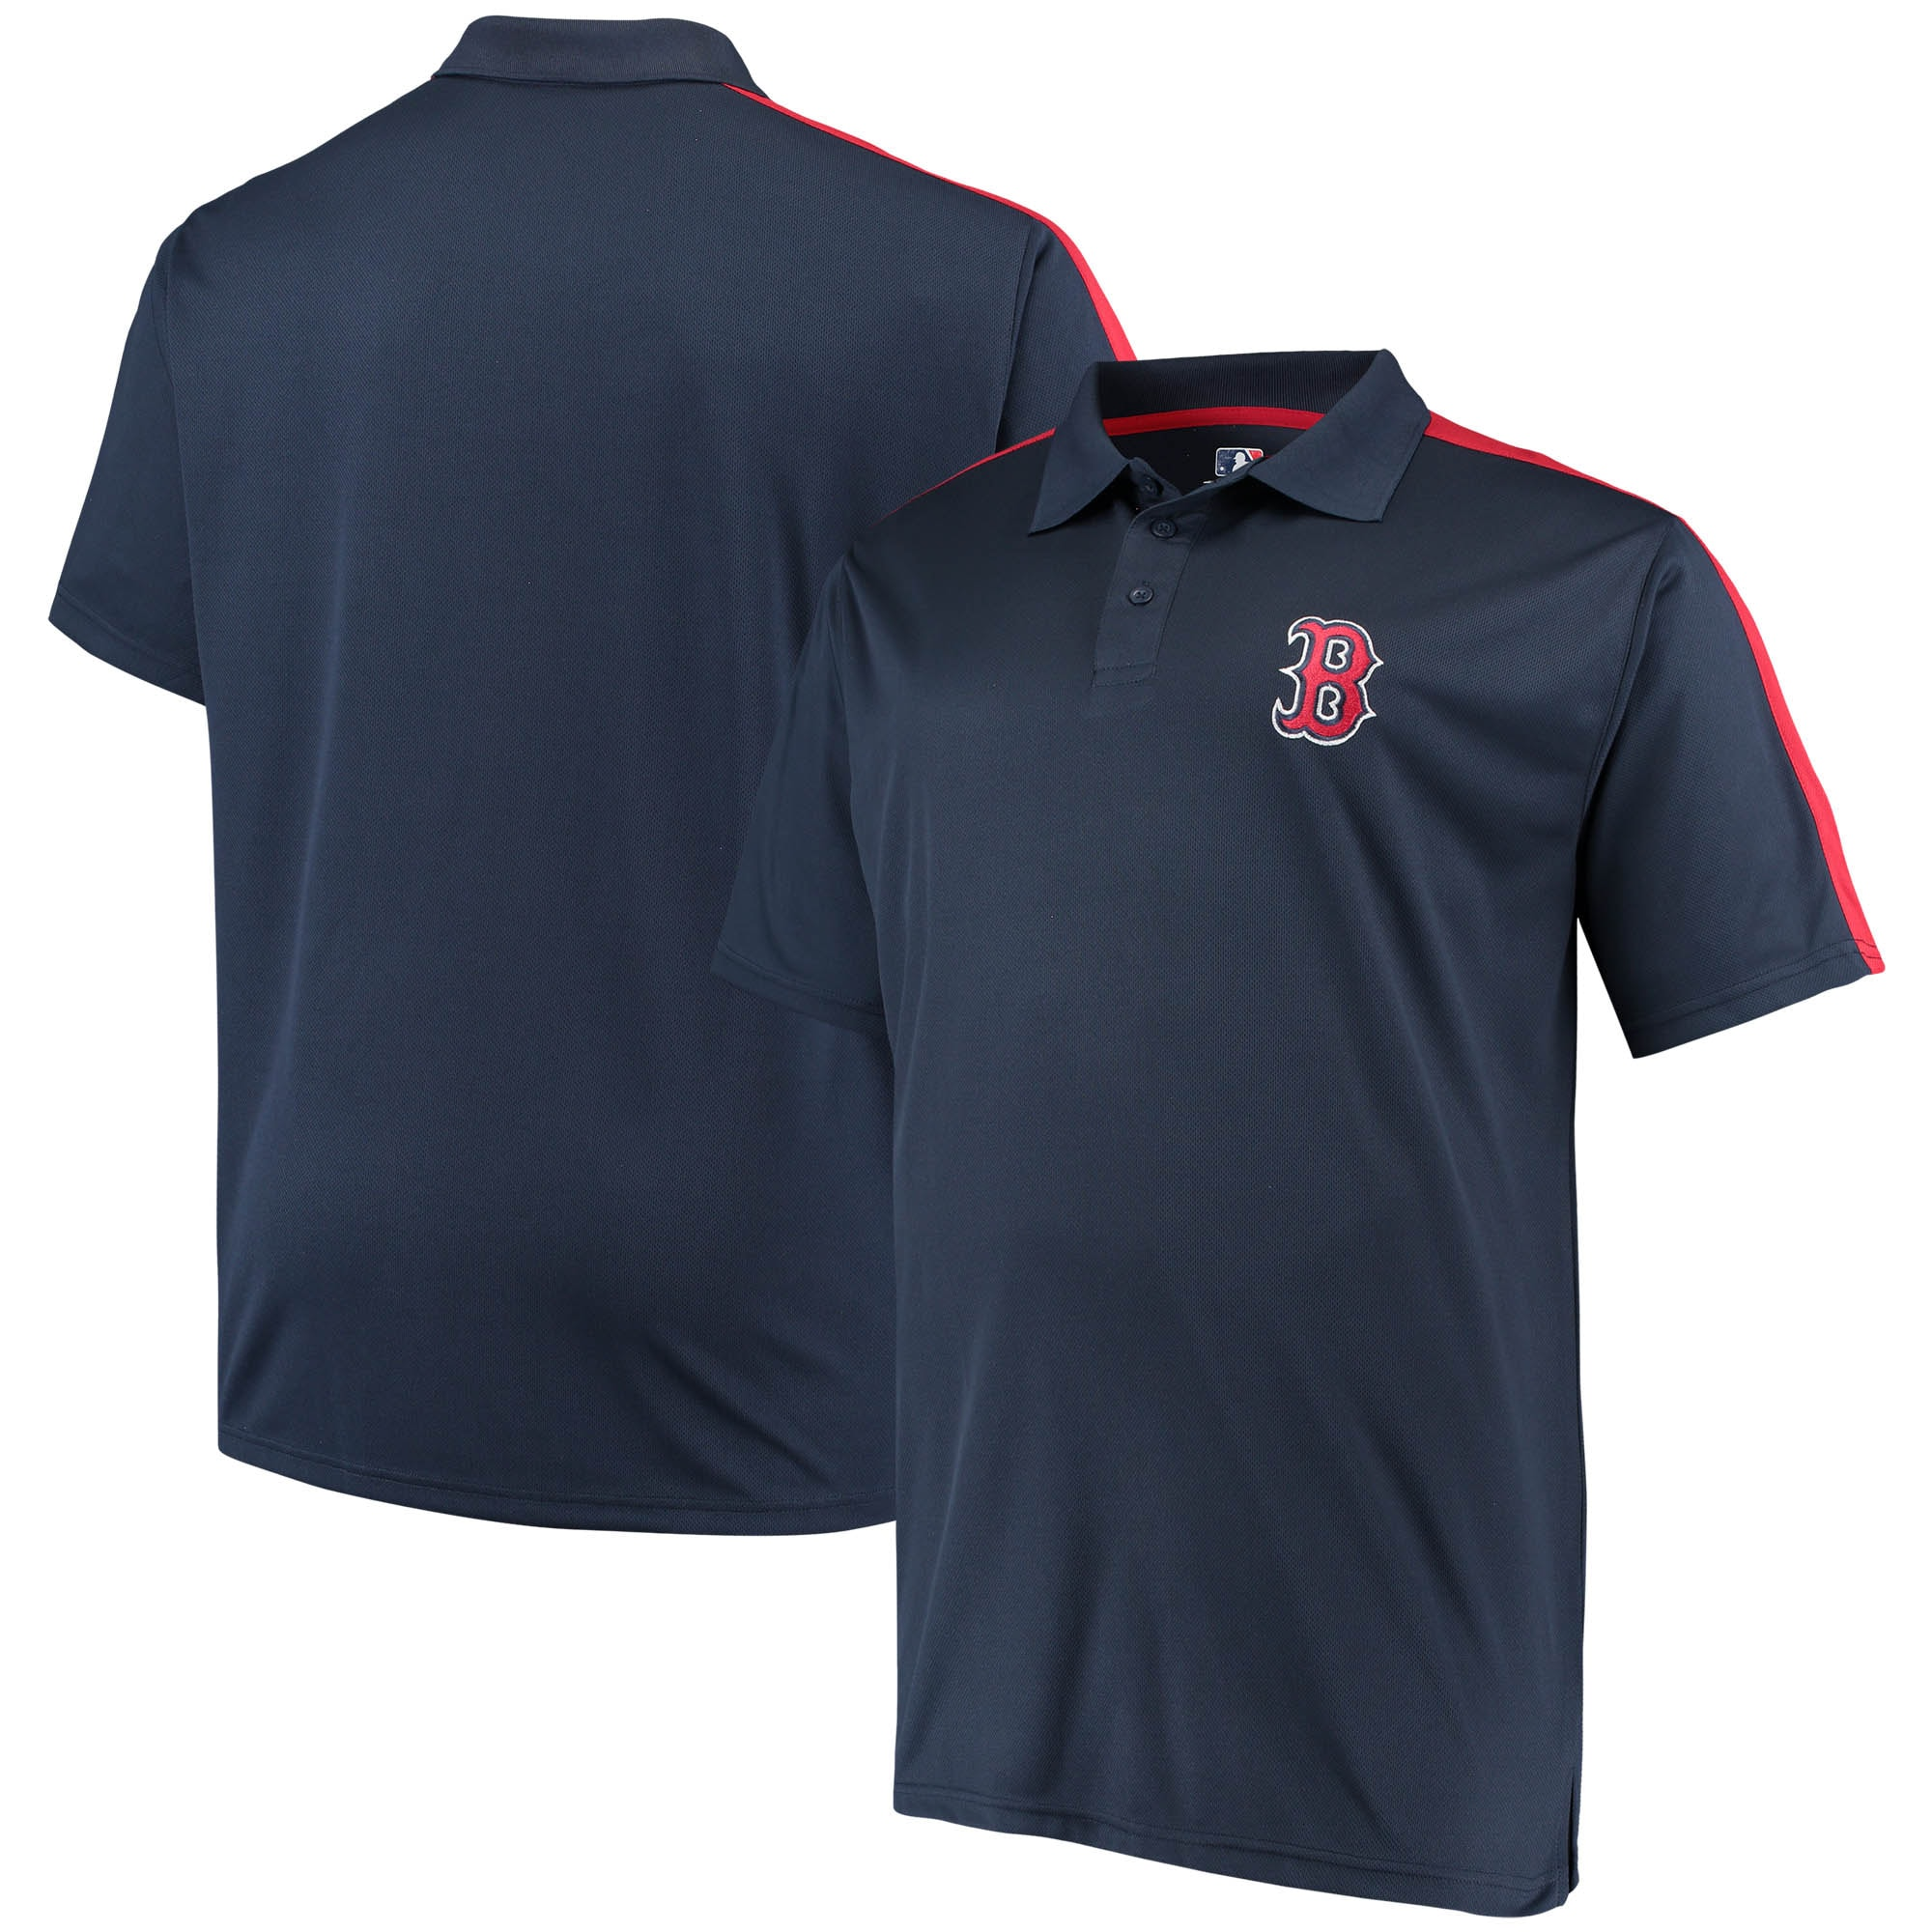 Boston Red Sox Big & Tall 2-Tone Birdseye Polo - Navy/Red